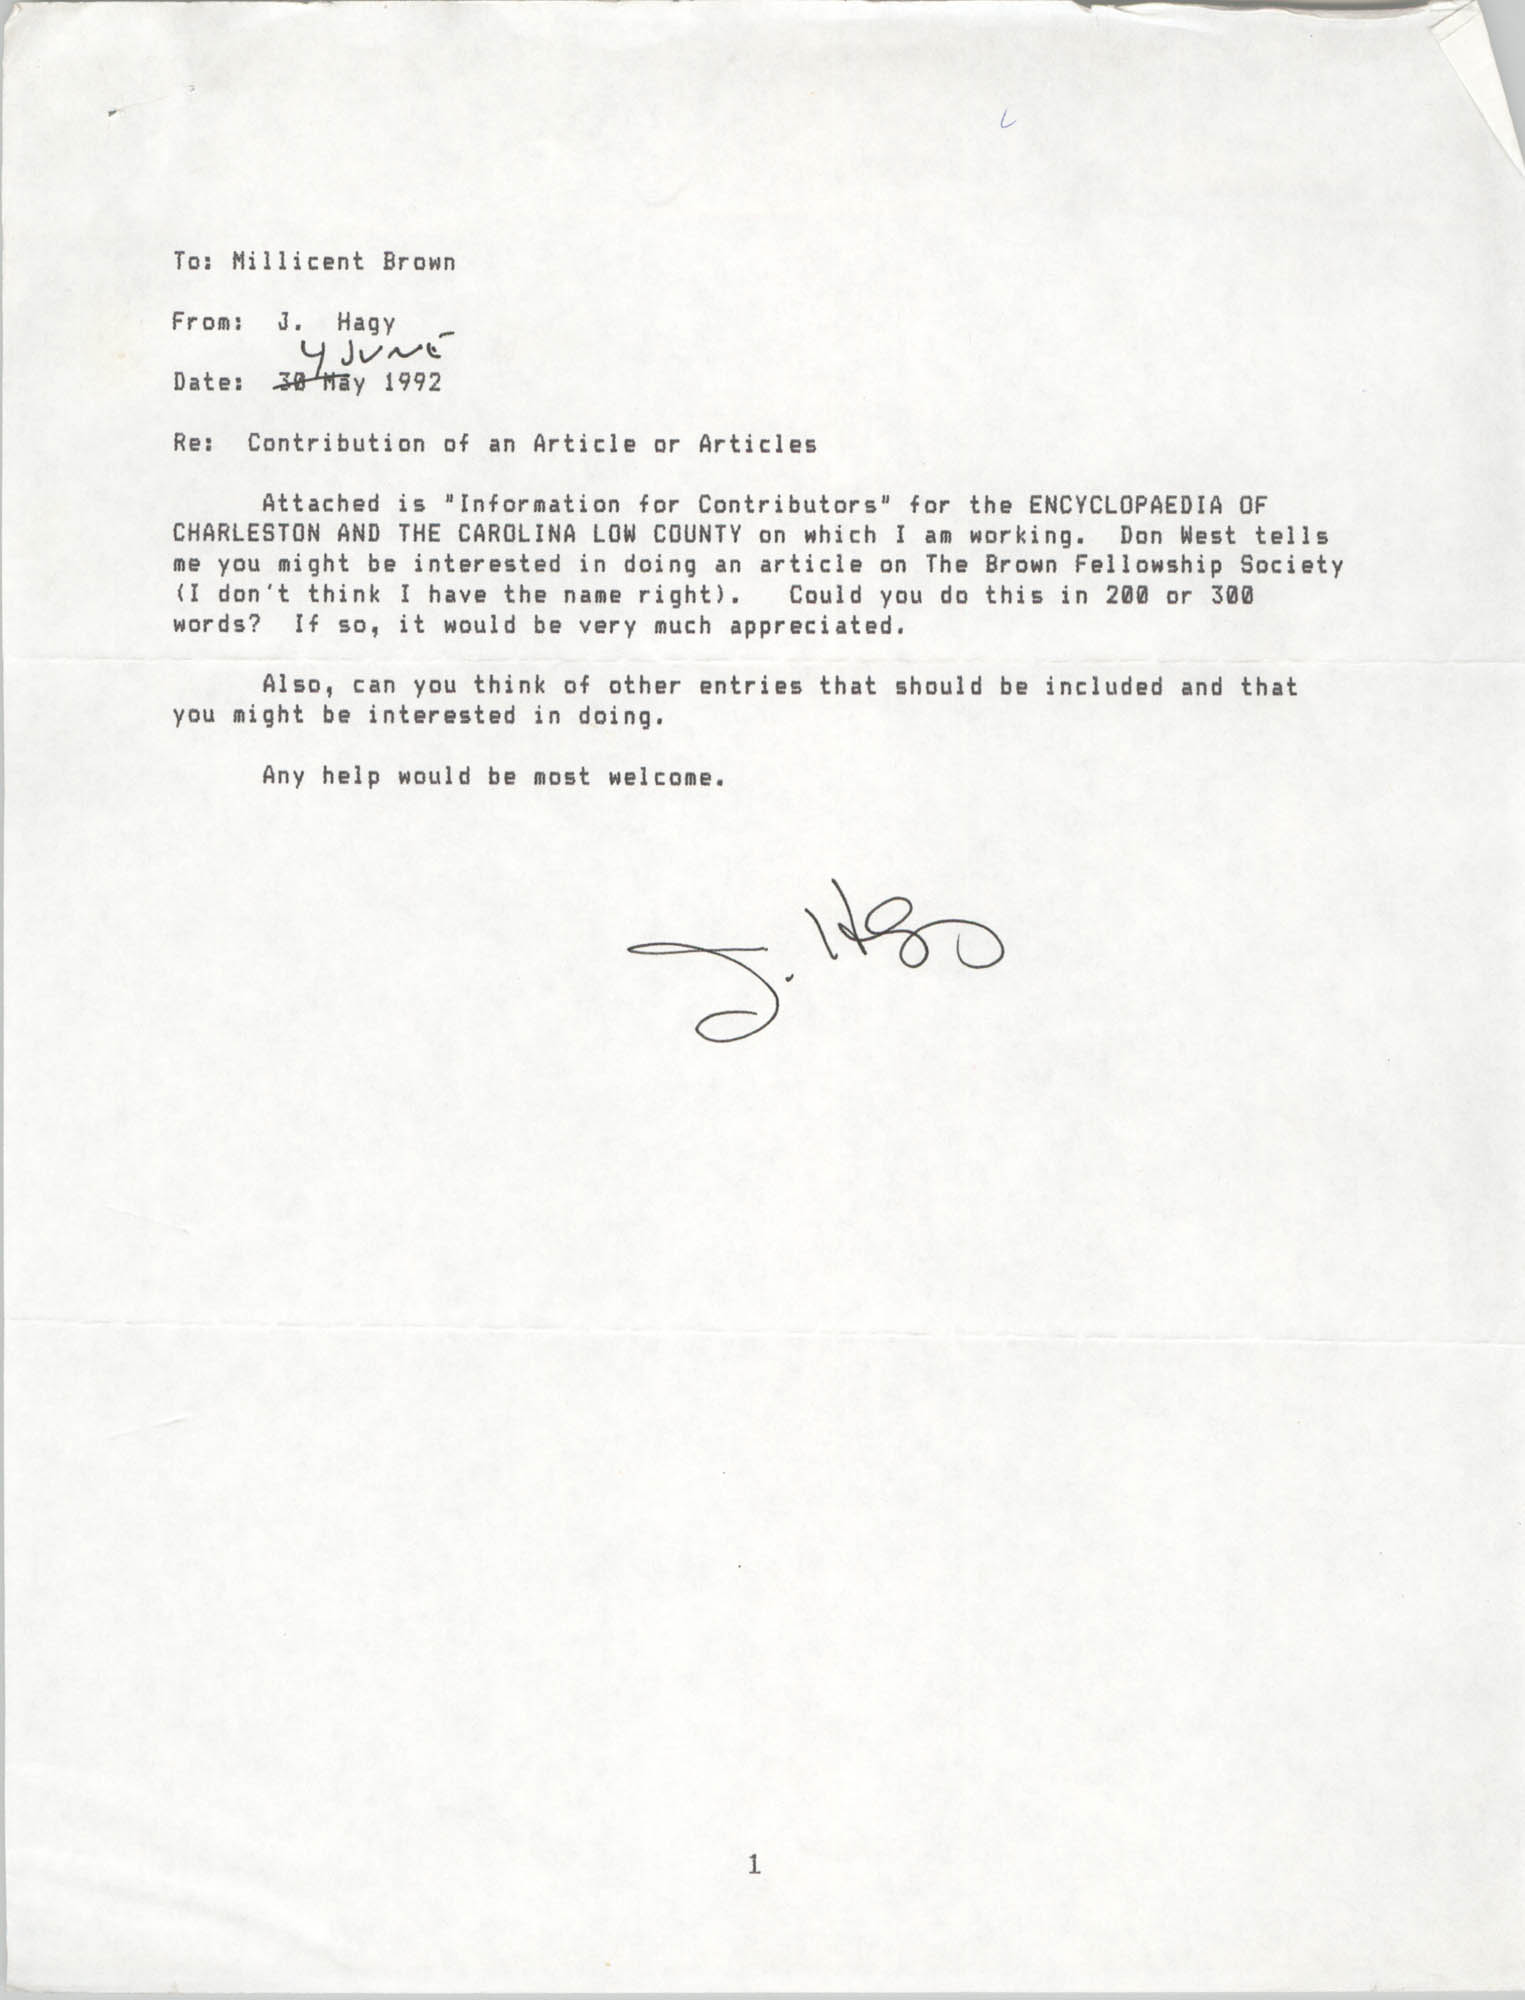 Letter from J. Hagy to Millicent Brown, June 4, 1992